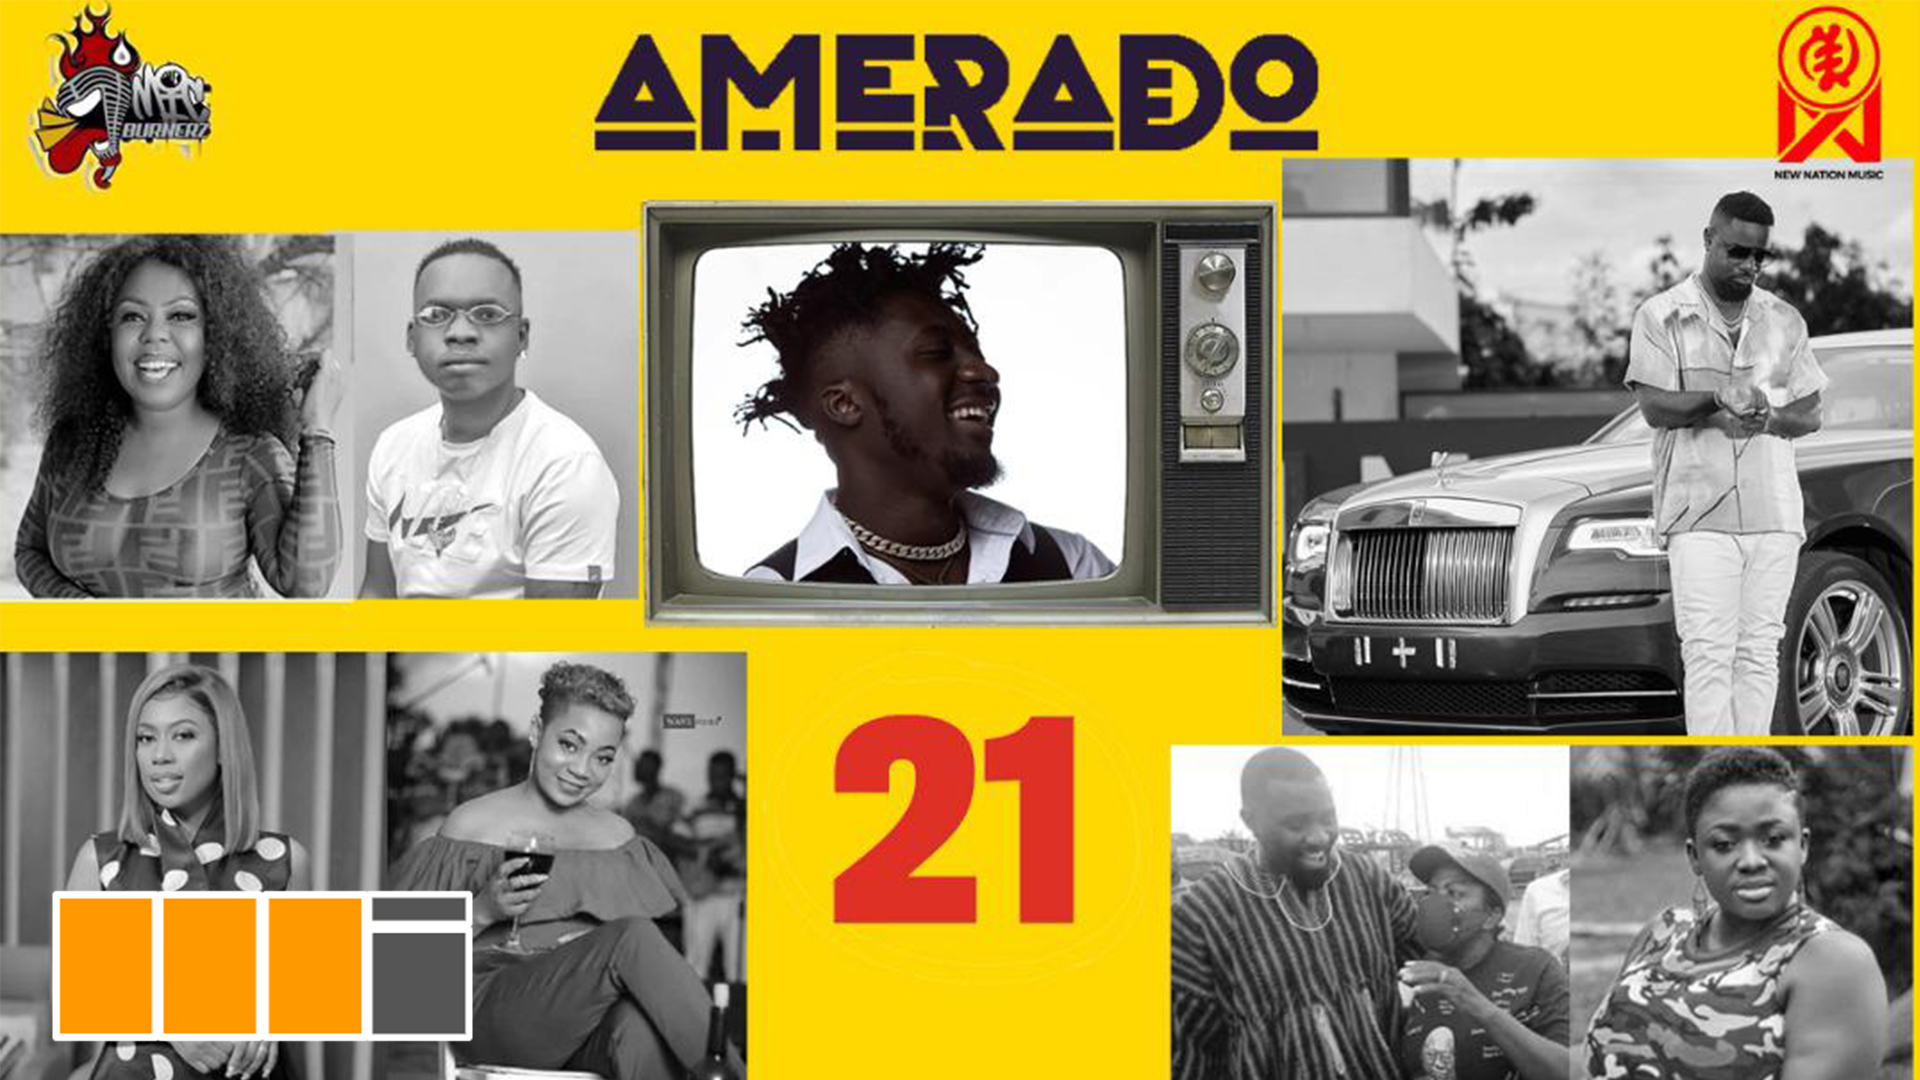 Amerado Recruits AMG's Evergreen On Yeete Nsem Episode 21